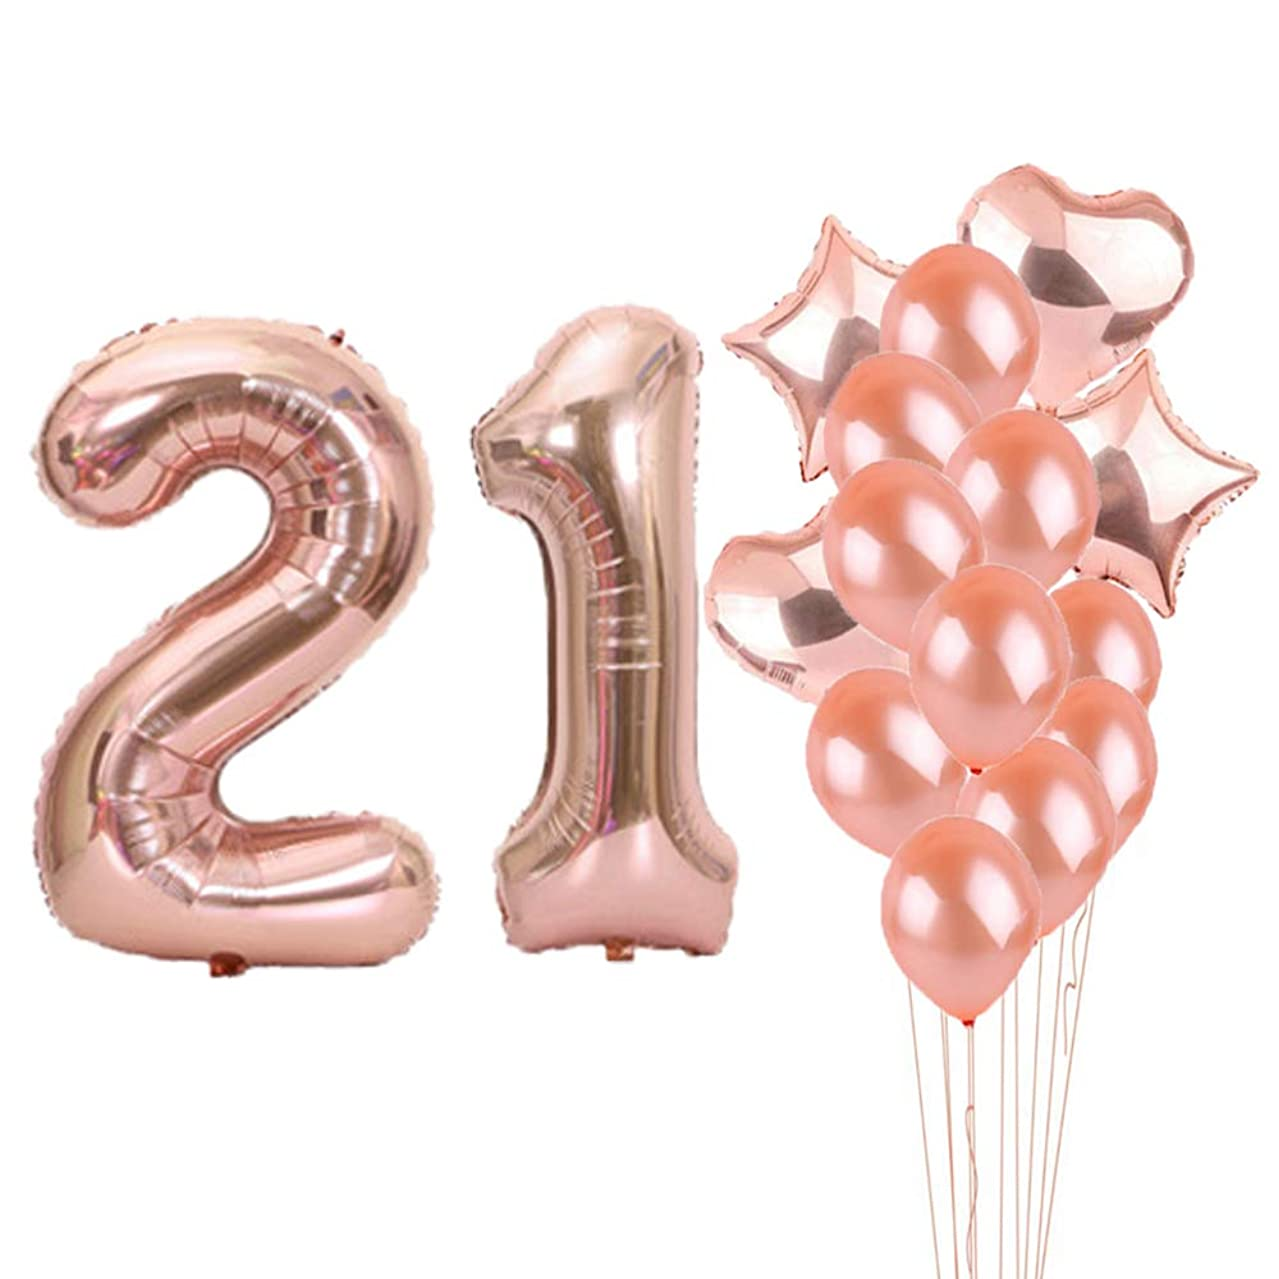 Sweet 21th Birthday Decorations Party Supplies,Rose Gold Number 21 Balloons,21th Foil Mylar Balloons Latex Balloon Decoration,Great 21th Birthday Gifts for Girls,Women,Men,Photo Props